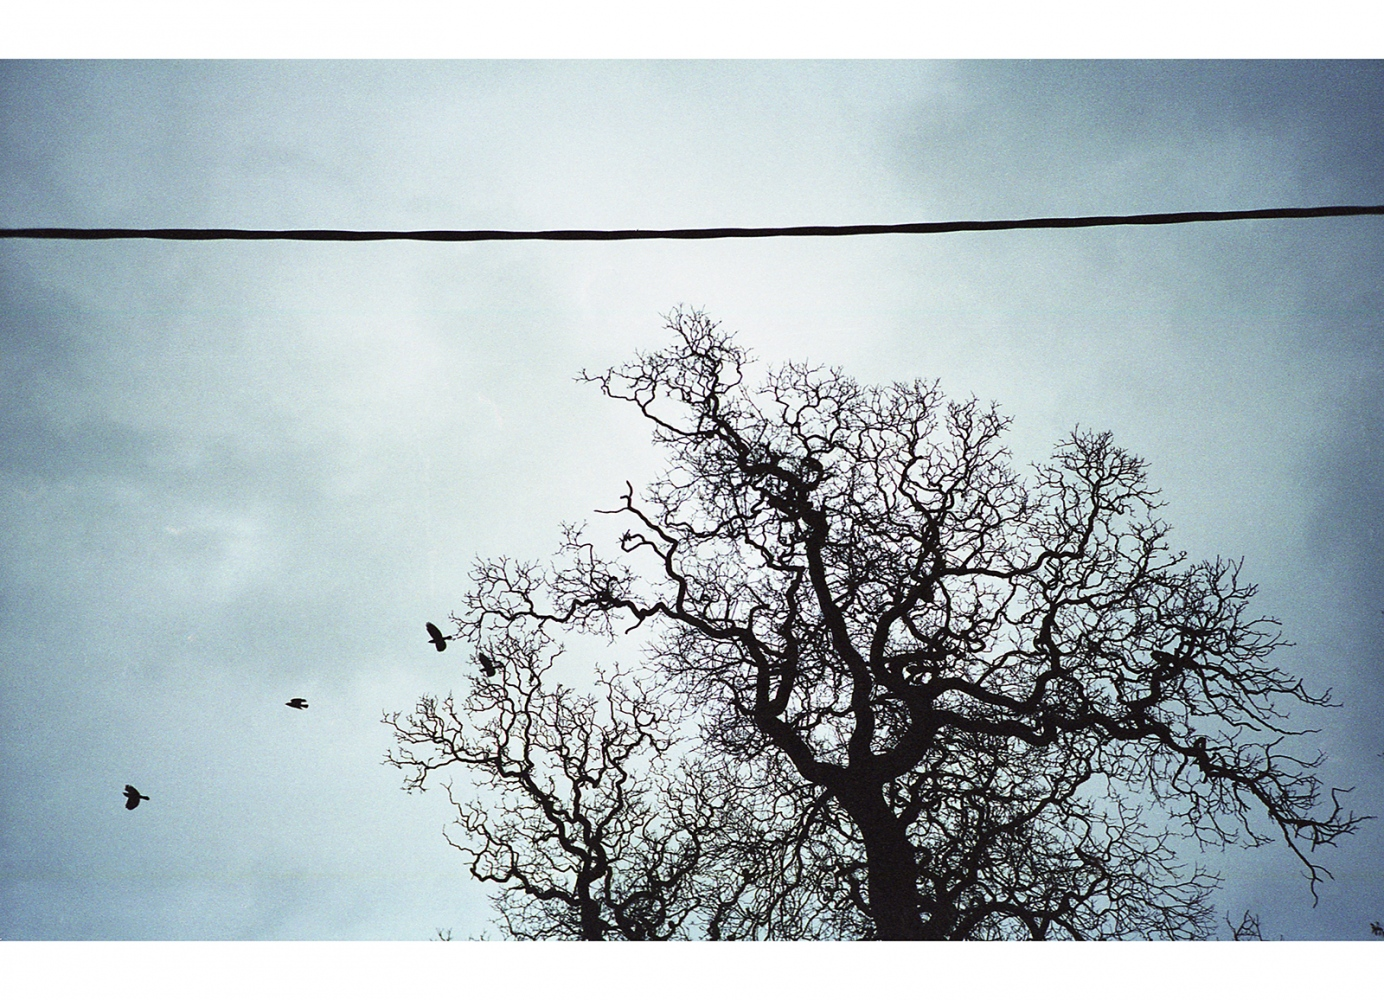 Tree, Birds, and a Power Line